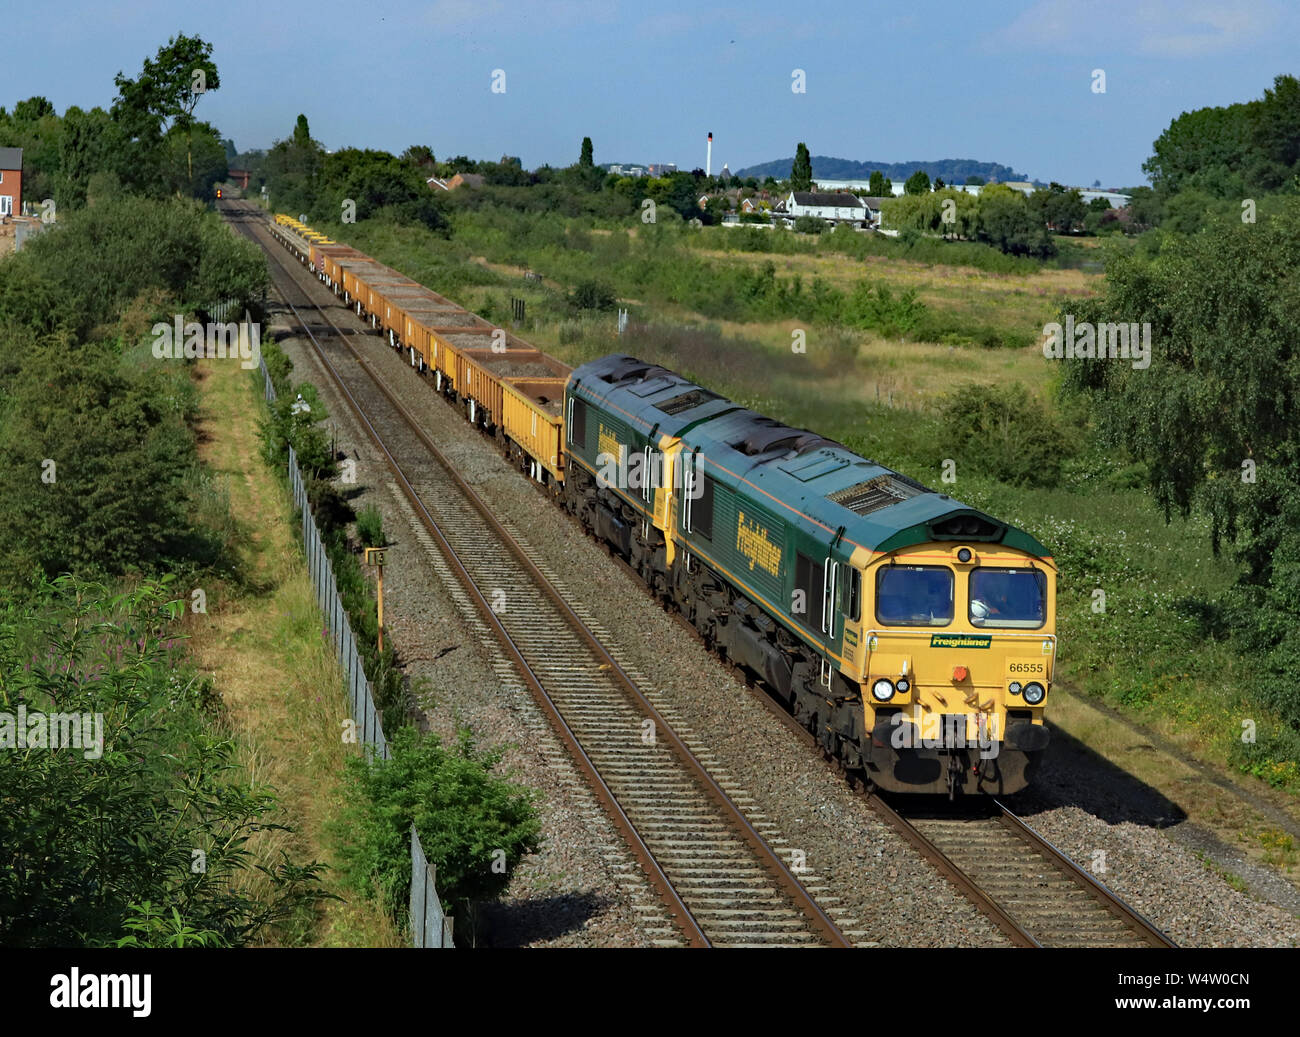 Freightliner diesel locomotives 66555 and 66617 travelling from Burton on Trent towards Tamworth with a freight train pass Branston in Staffordshire. Stock Photo